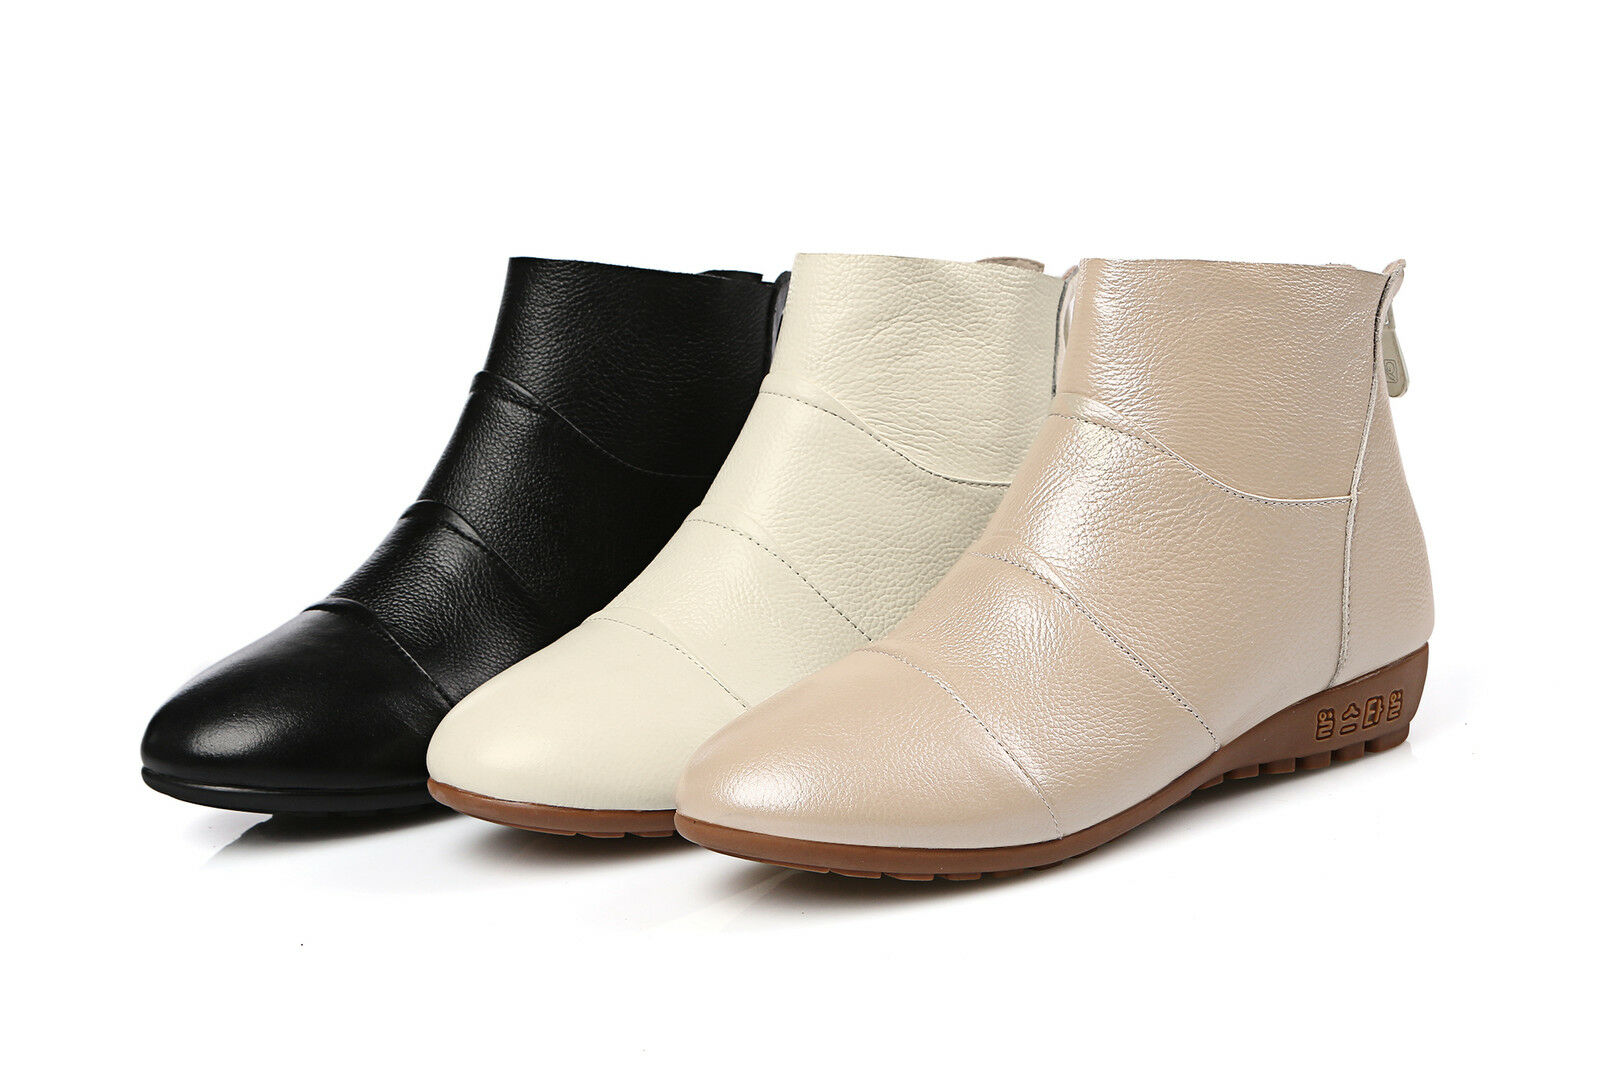 Ladies Casual shoes Genuine Leather Flats Low Heels Zip Ankle Boots US Size